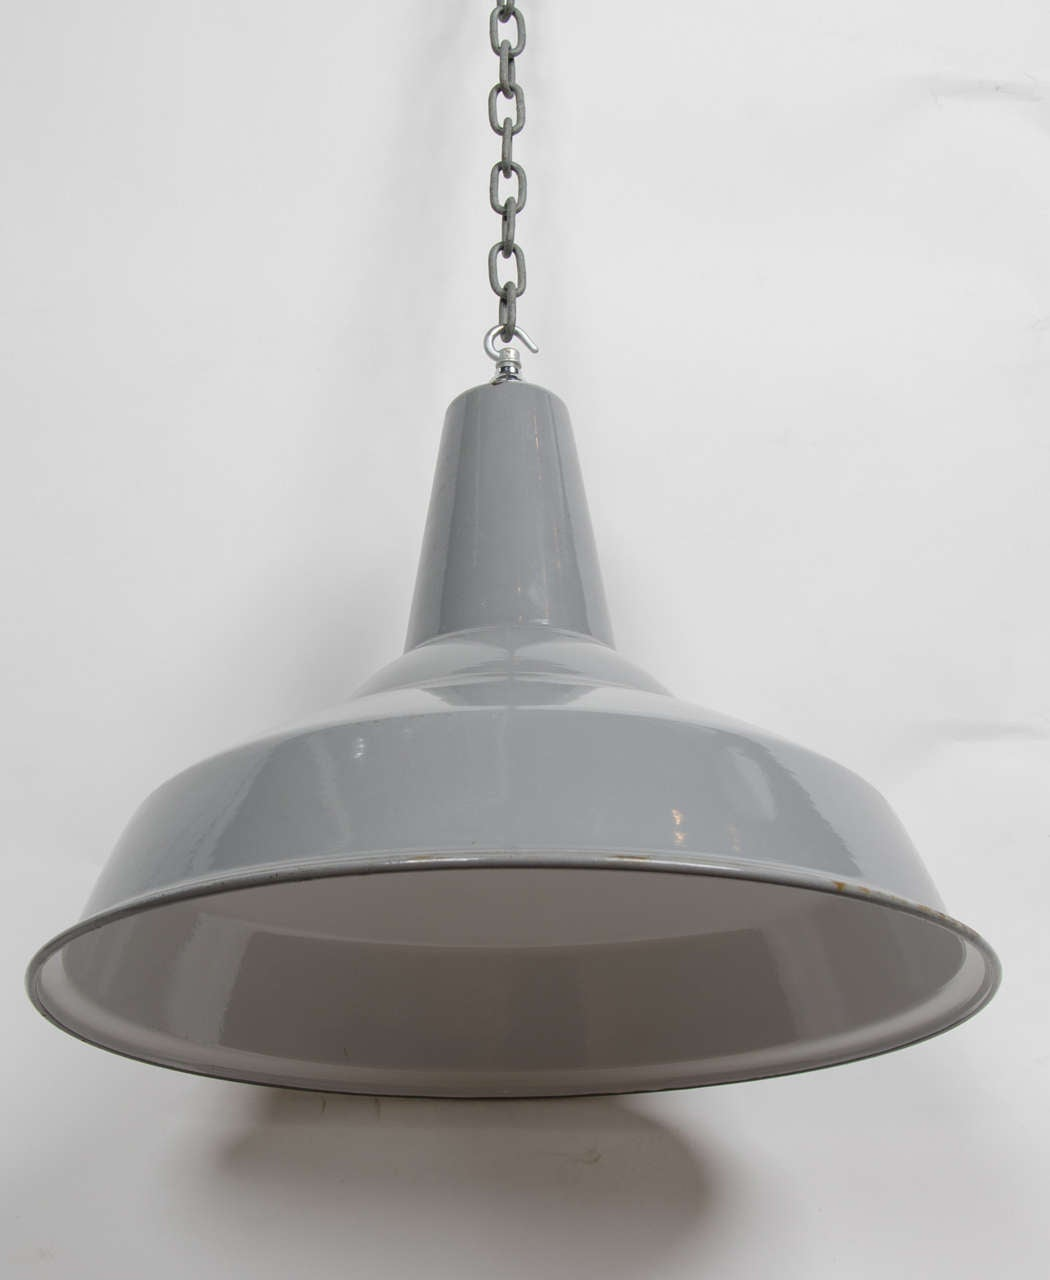 Vintage White And Grey Enamel Factory Light Shades At 1stdibs